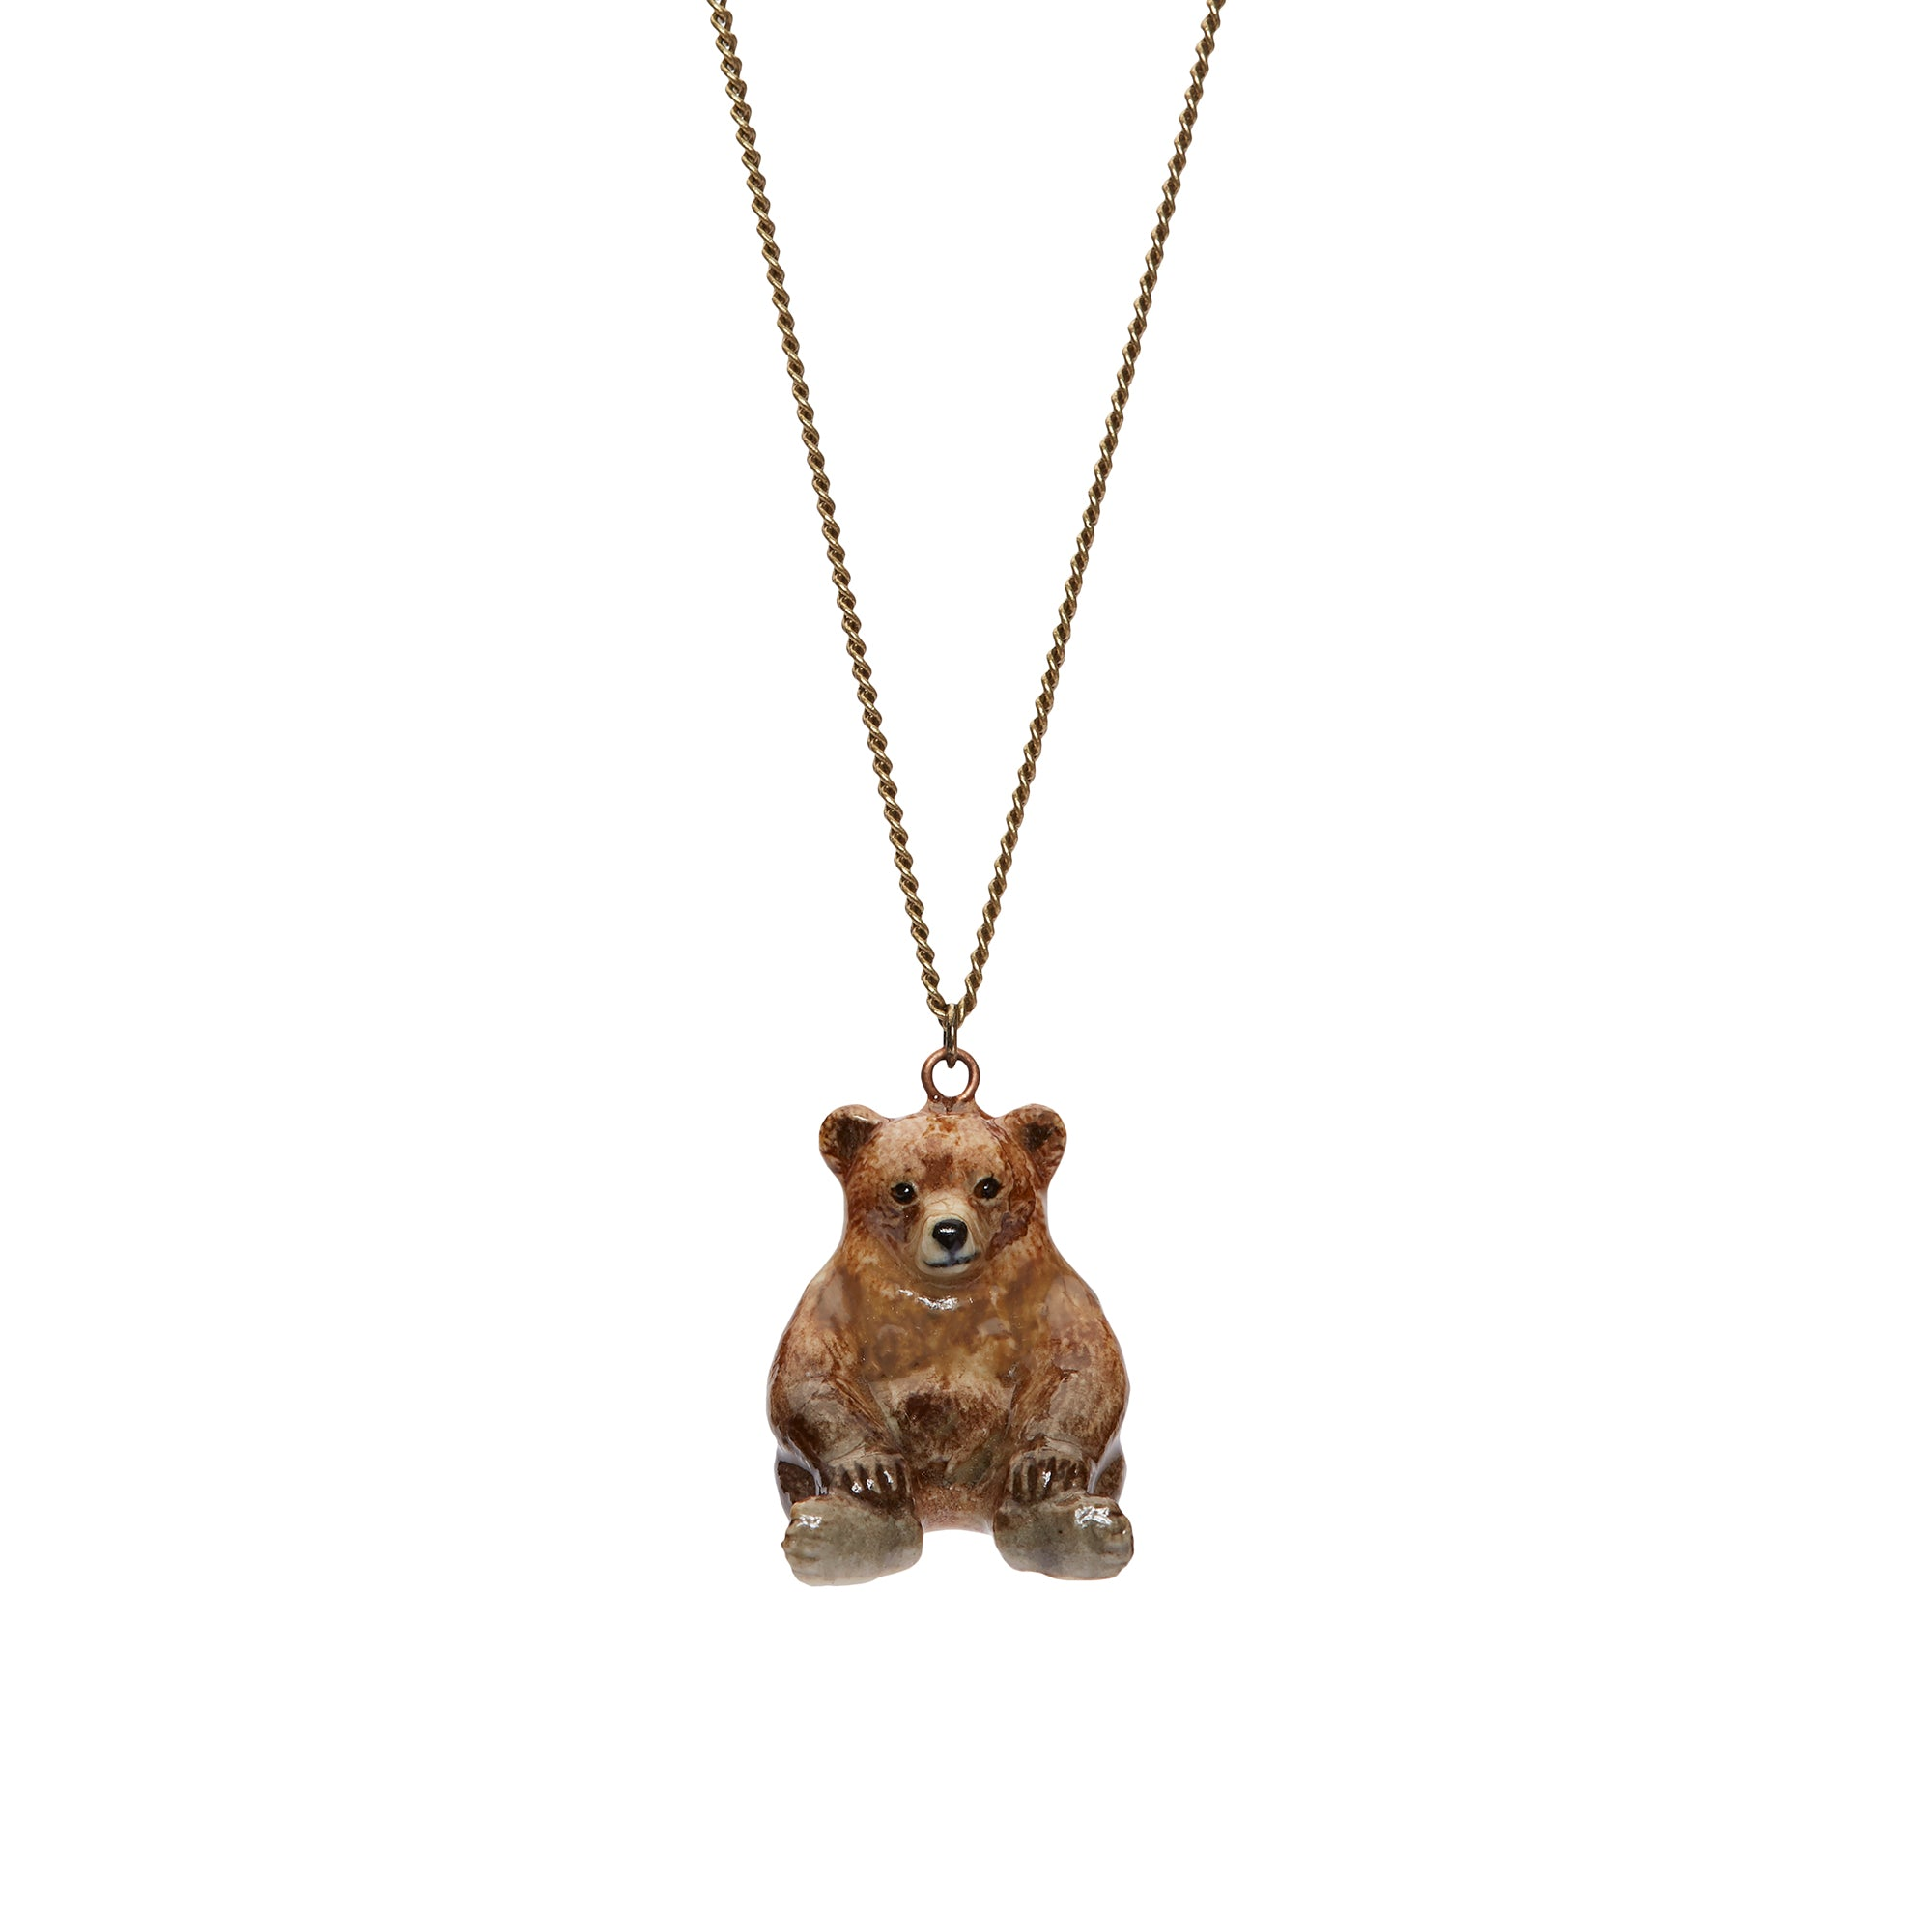 Tiny Sitting Bear Necklace